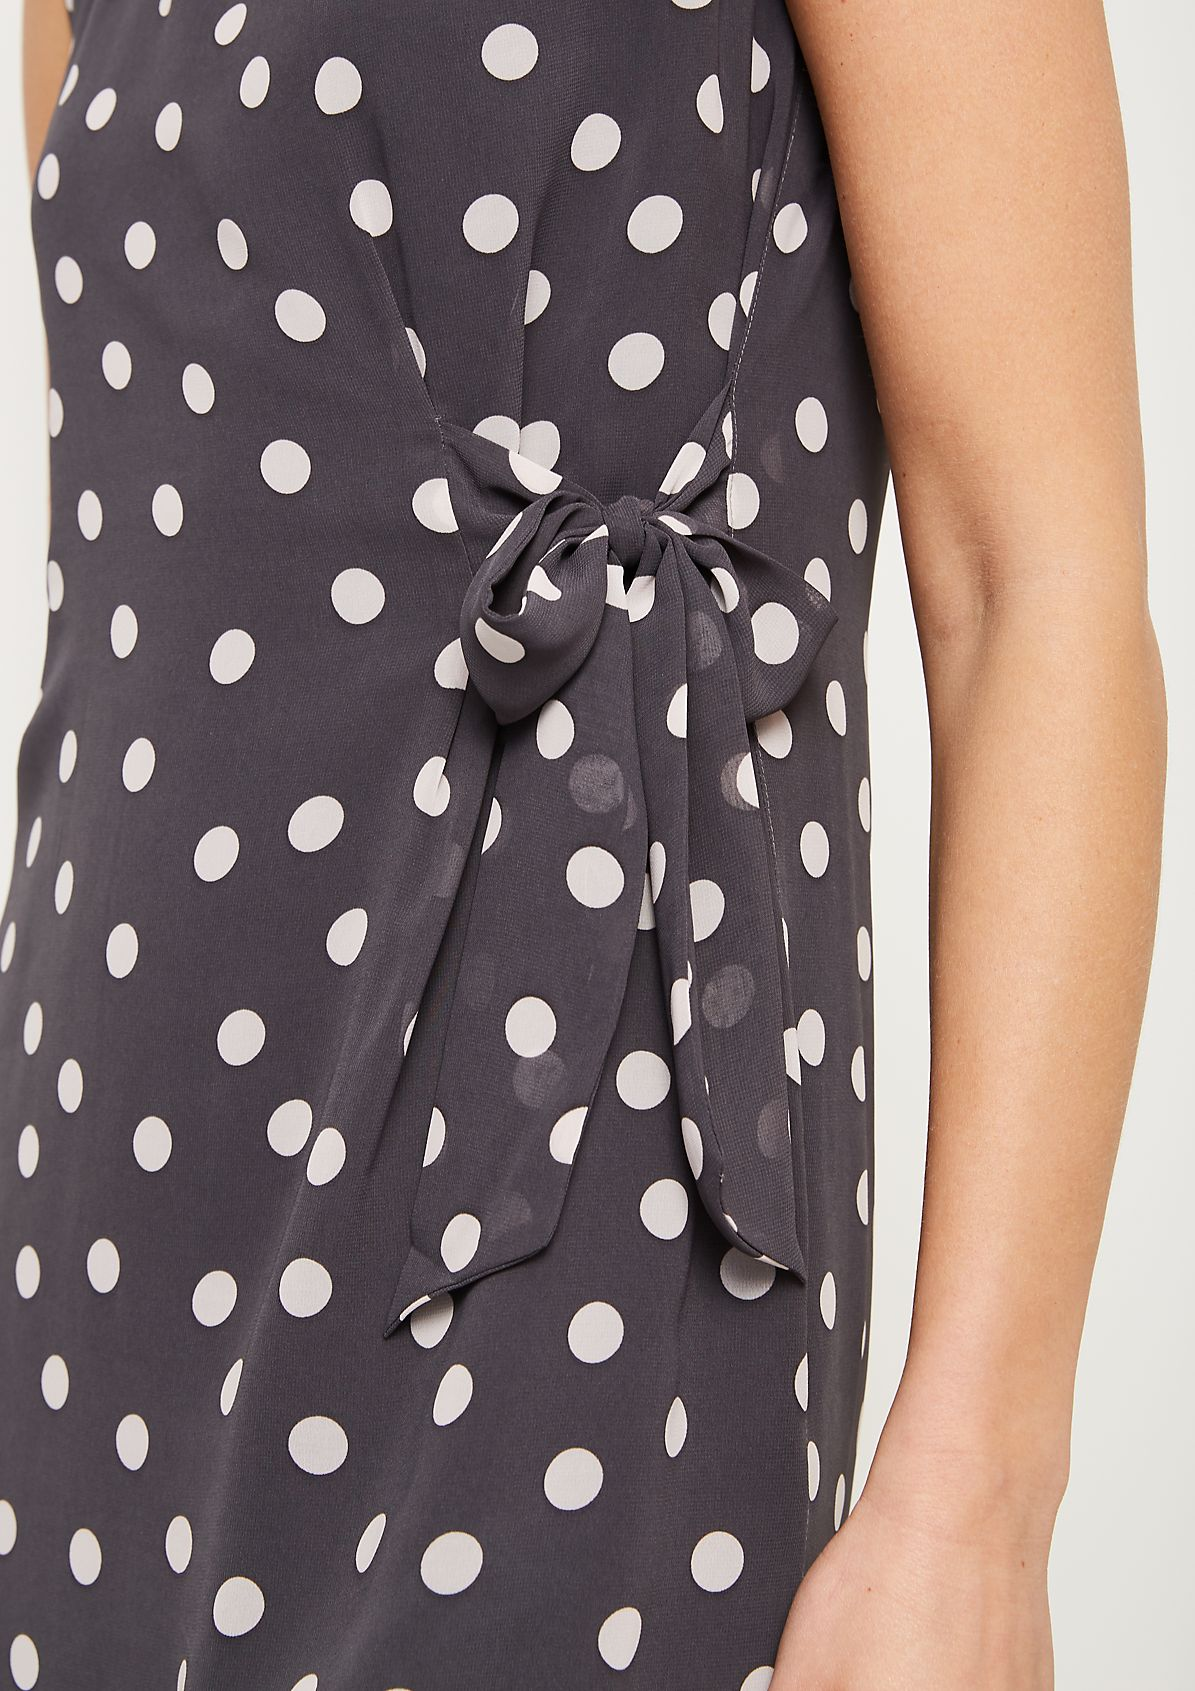 Delicate chiffon dress with an all-over floral pattern from comma